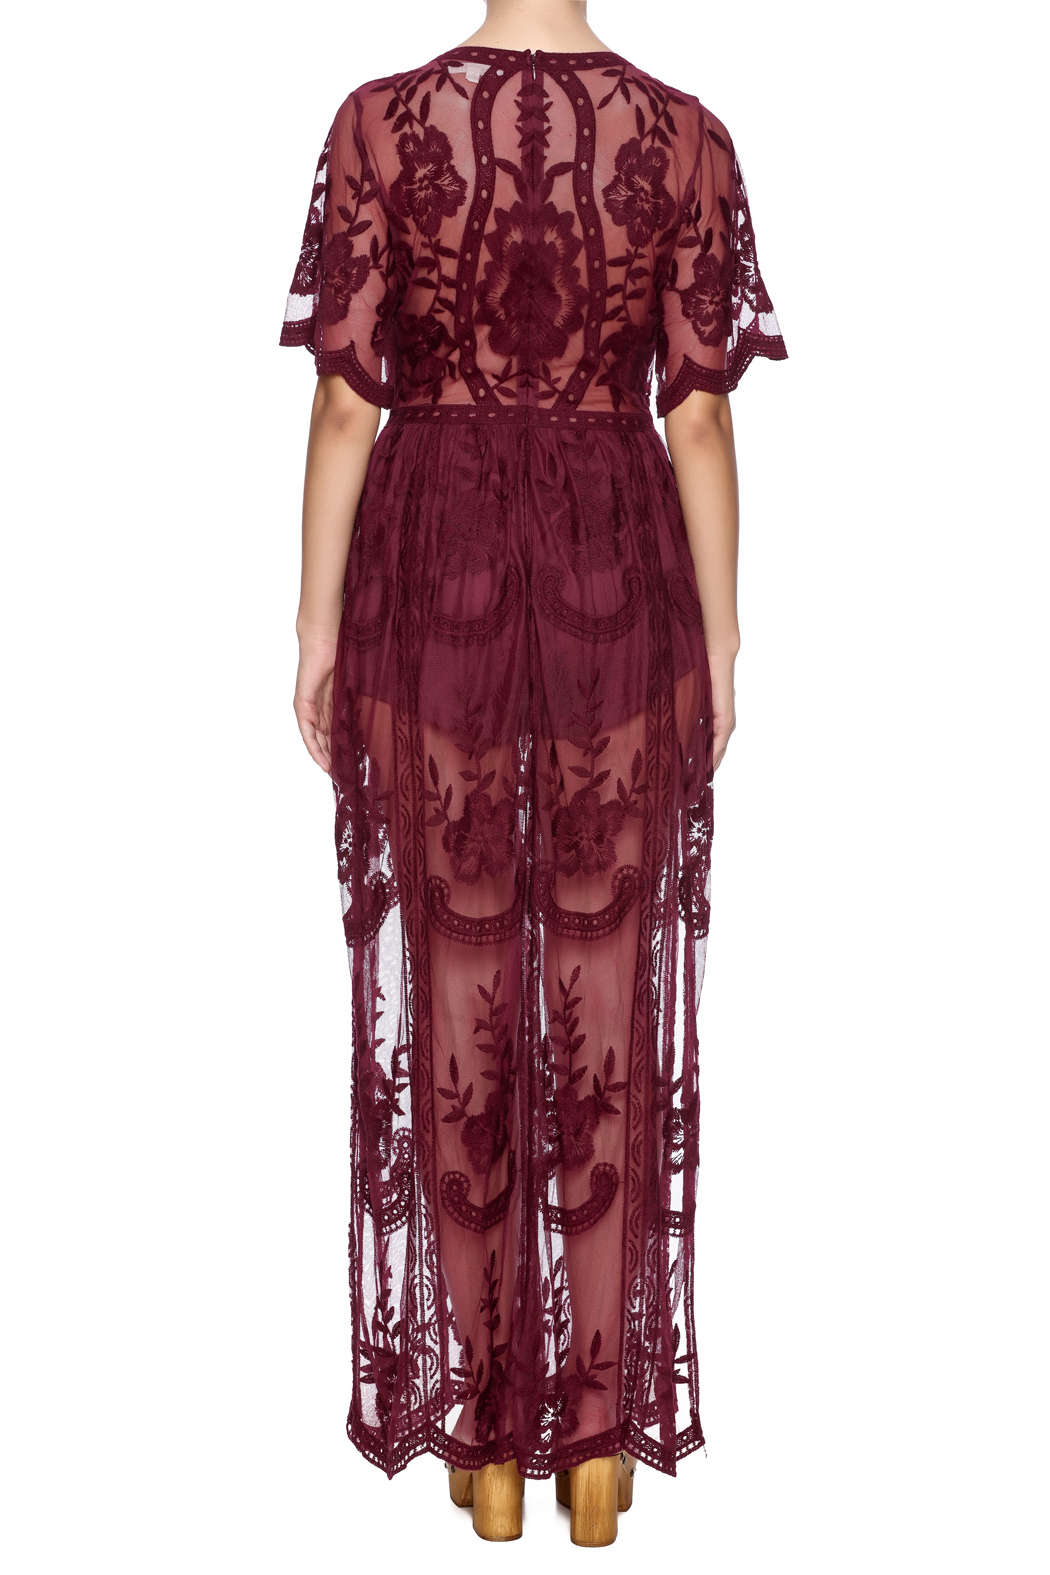 Honey Punch Boho Lace Maxi Dress From New York City By Dor